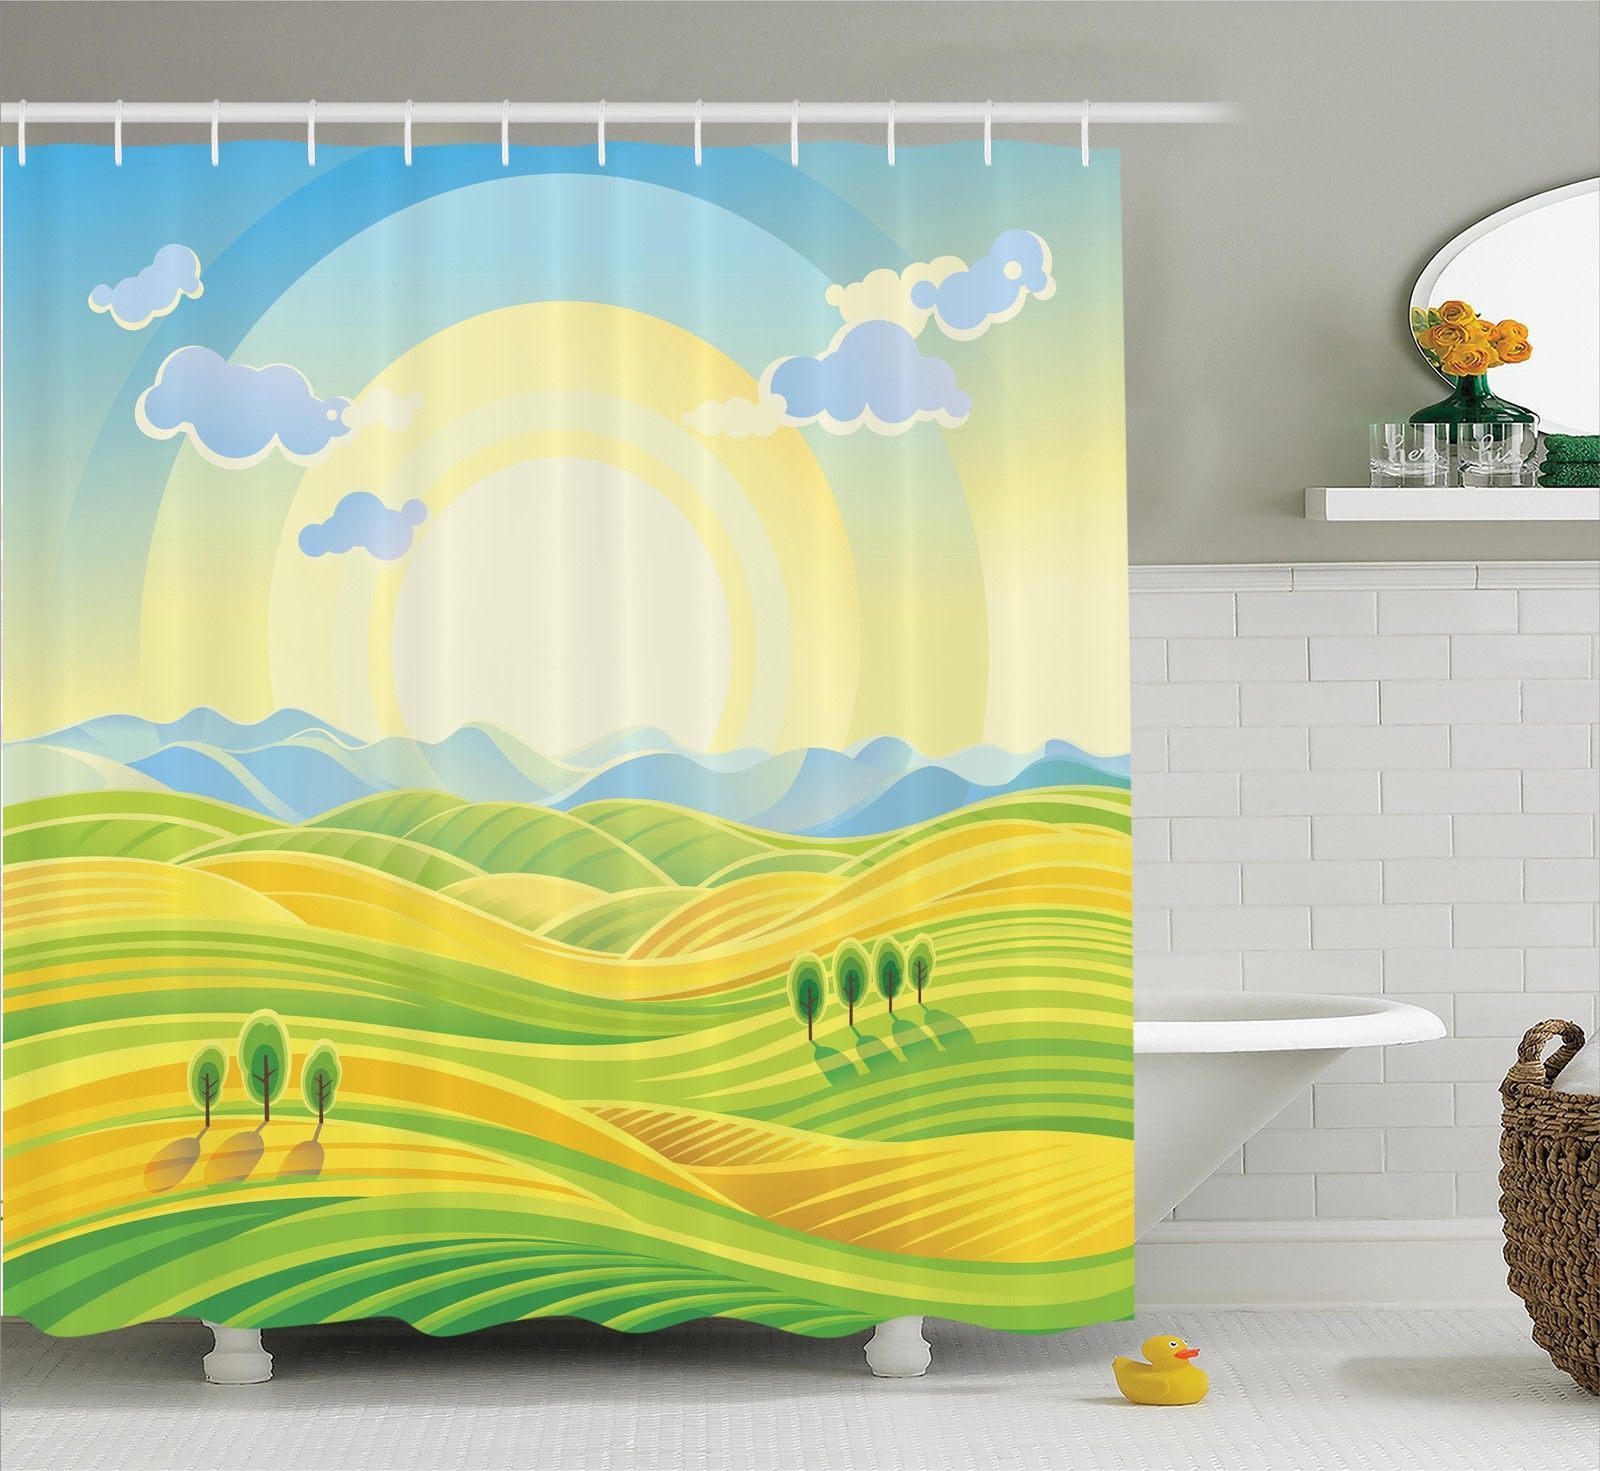 Farm House Decor Shower Curtain Set, Sunny Rural Landscape With Rolling Hills Fields In Autumn Color Cartoon Art Print, Bathroom Accessories, 69W X 70L Inches, By Ambesonne